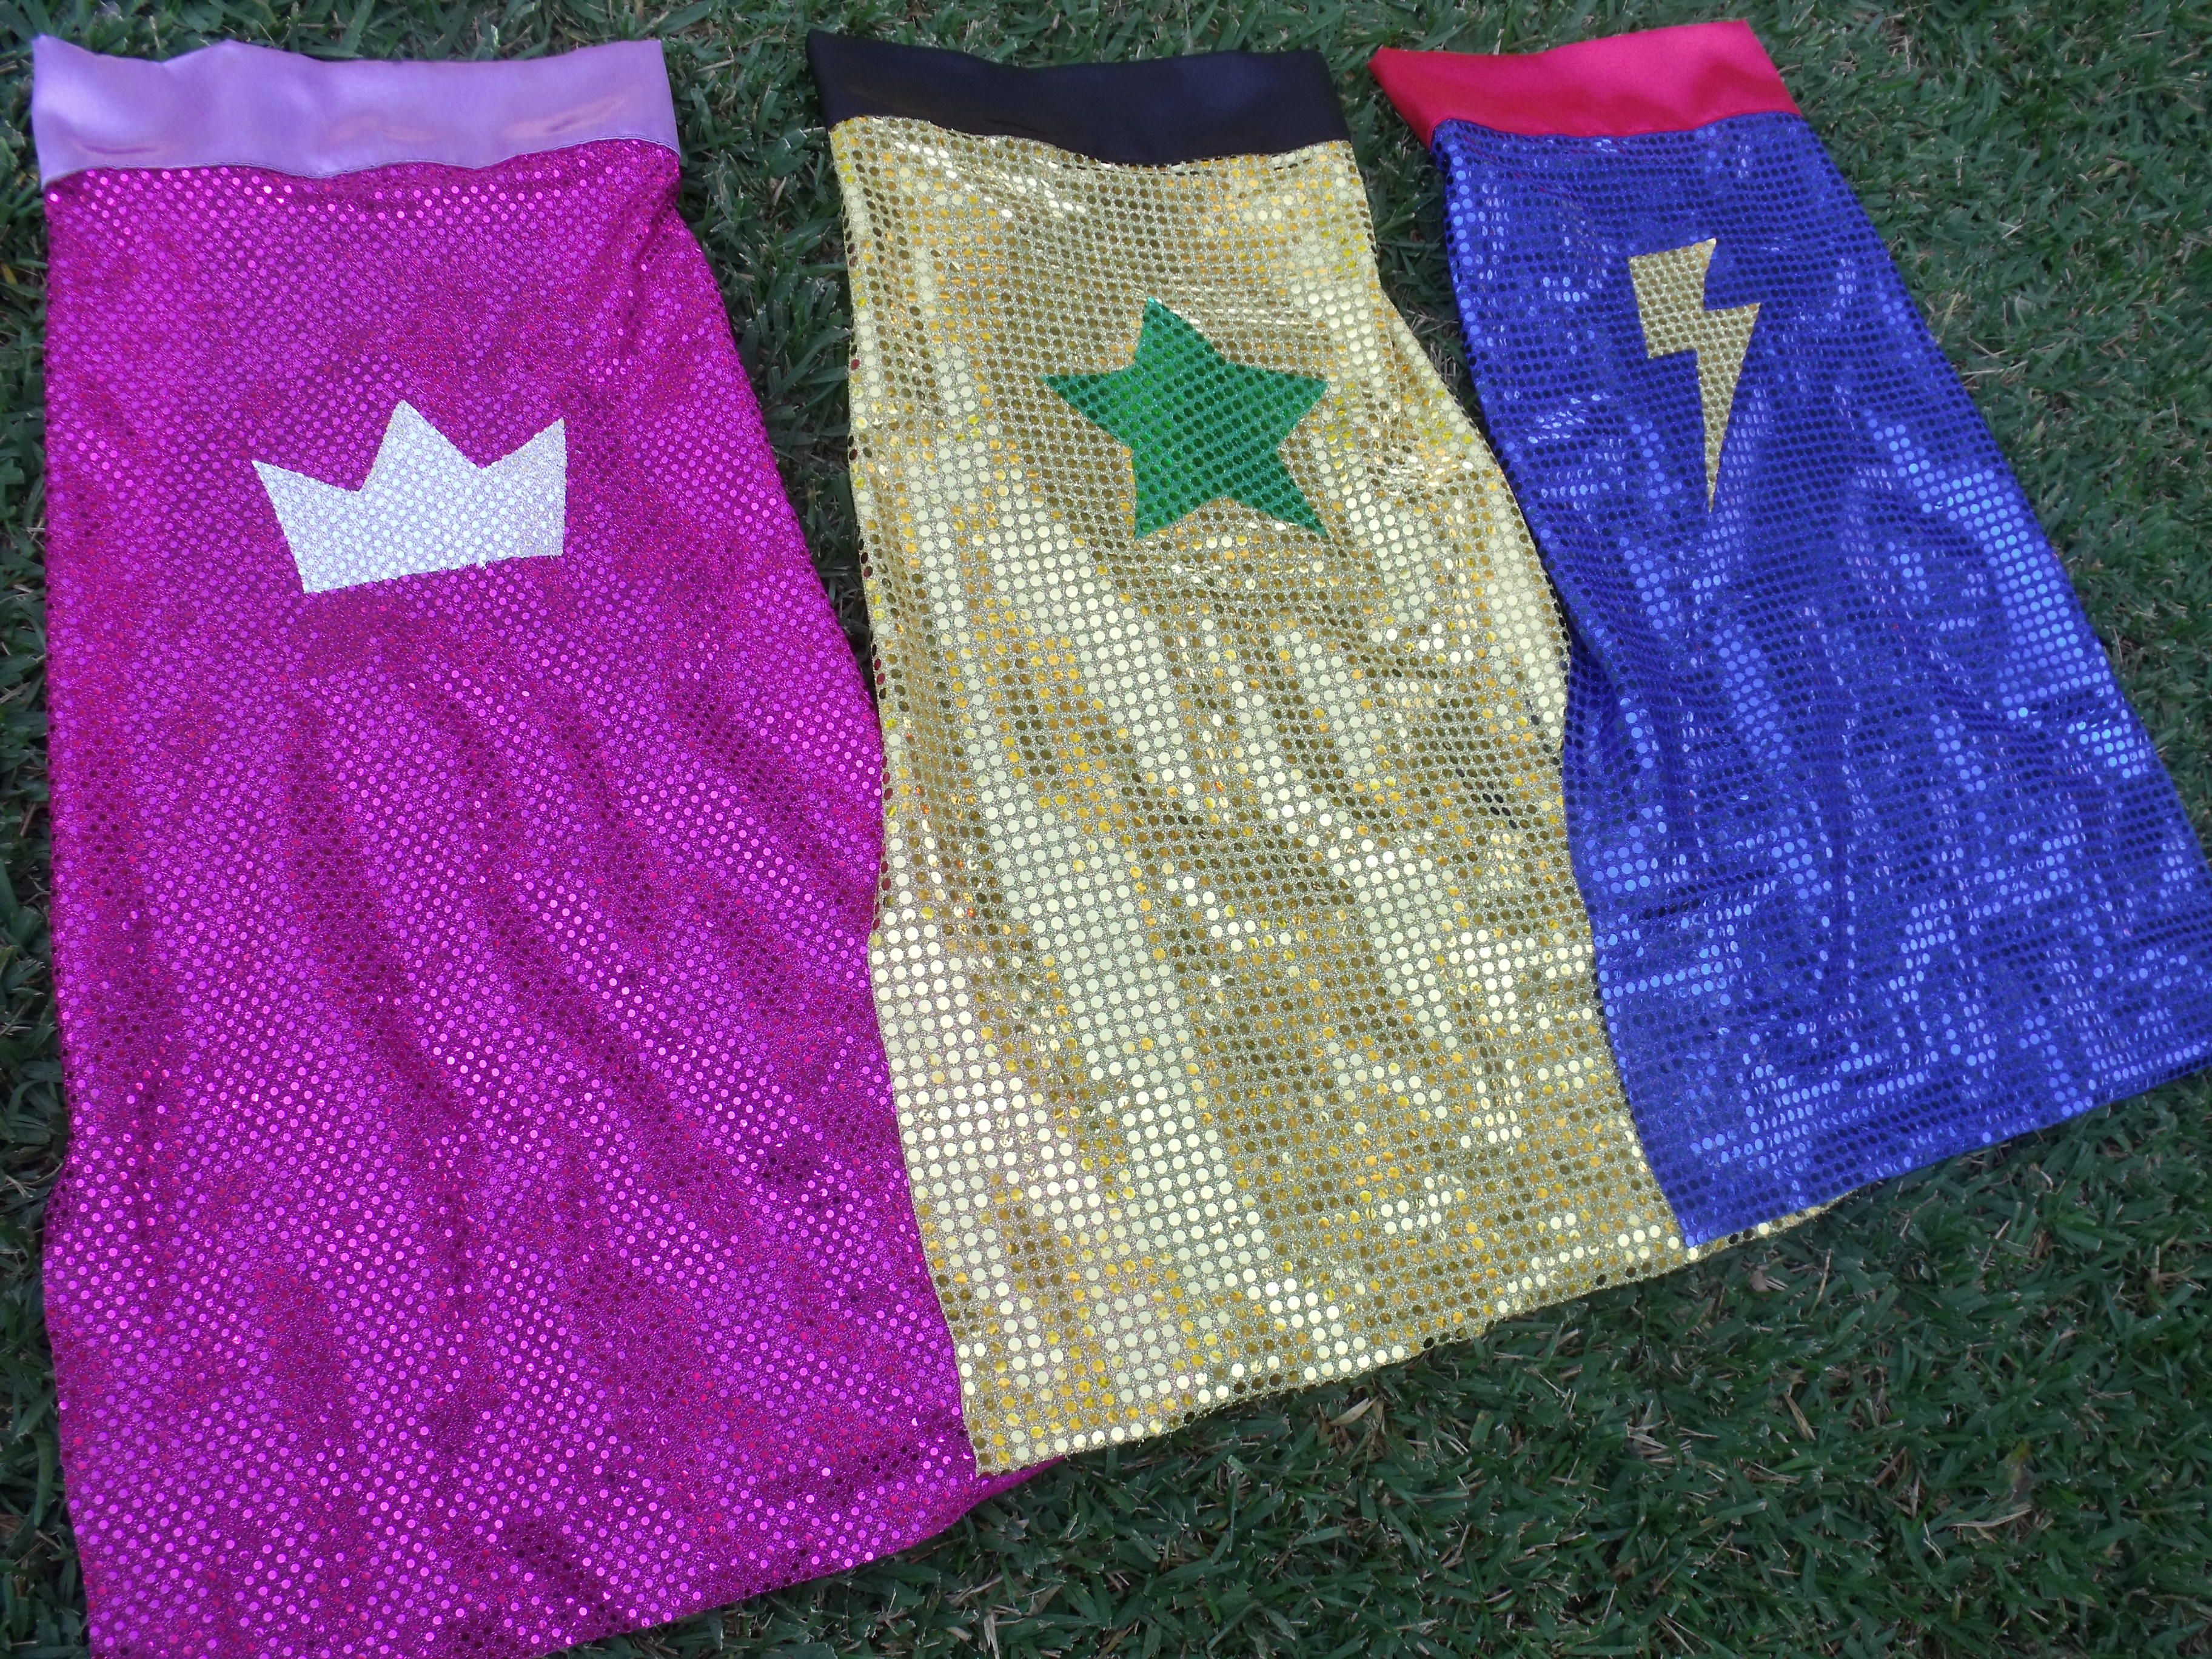 Easy superhero capes made for the Arts & Craft stall of the School Fete. Cut disco sequin into long rectangles - no hemming needed - and put on a satin collar that attaches with velcroe at the ends, and use a double-sided interfacing to iron-on a symbol like a star or lightening bolt.